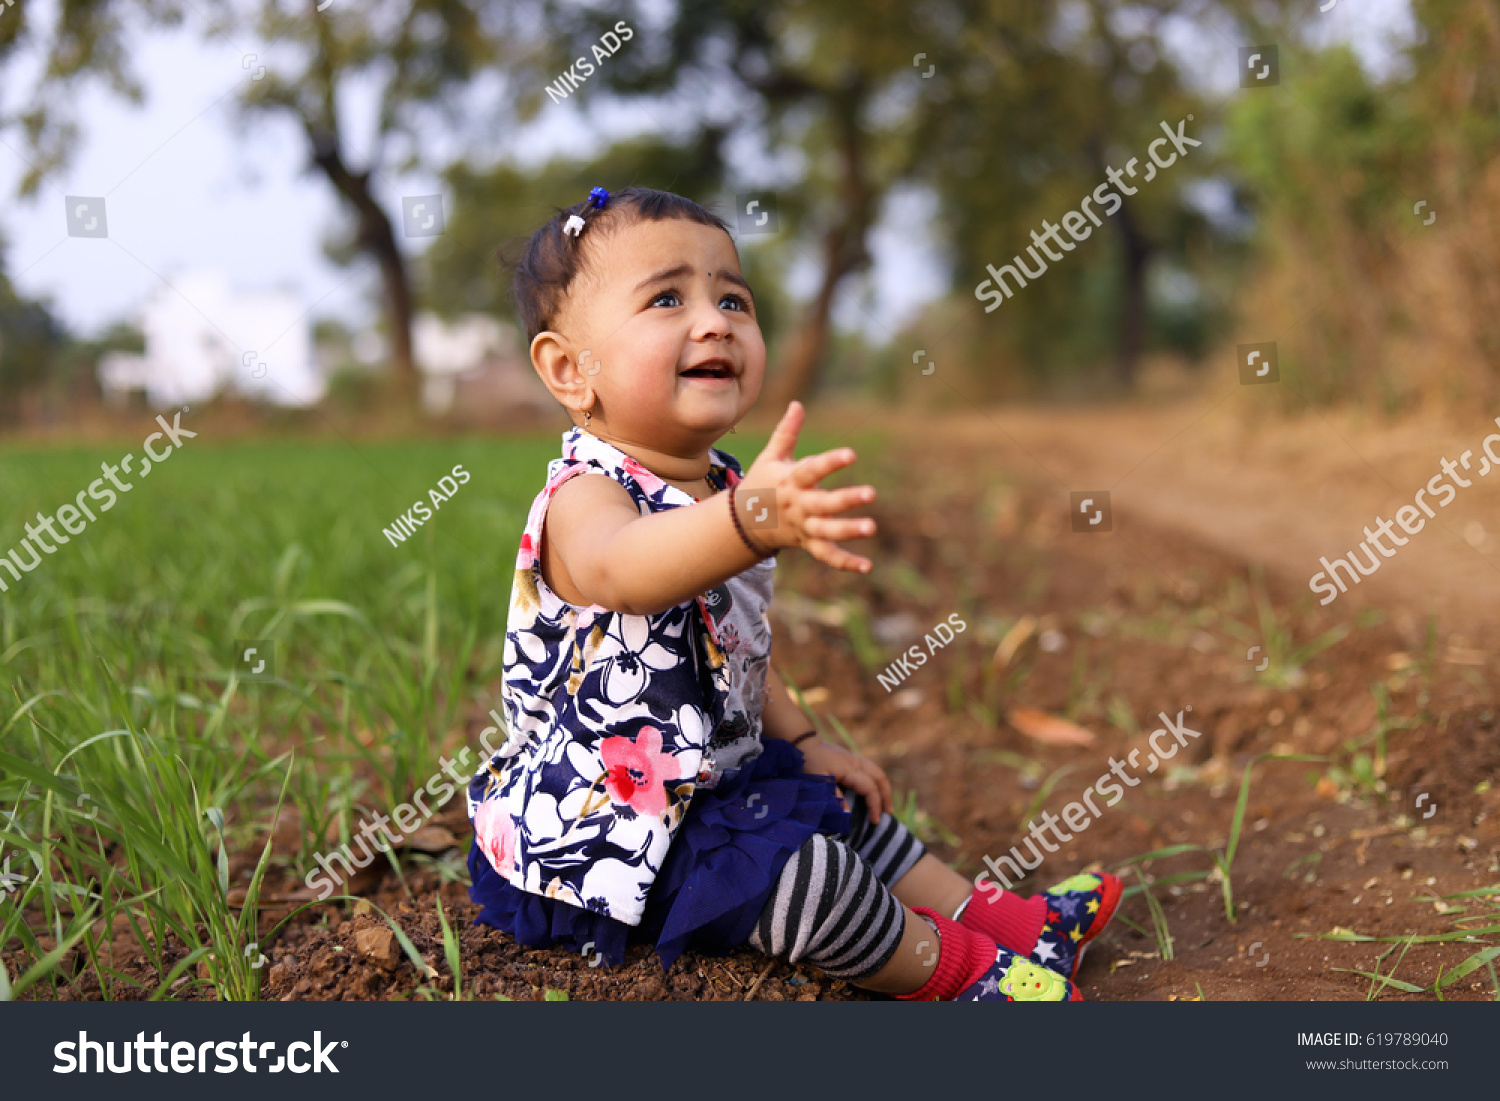 cute indian baby girl stock photo (edit now) 619789040 - shutterstock